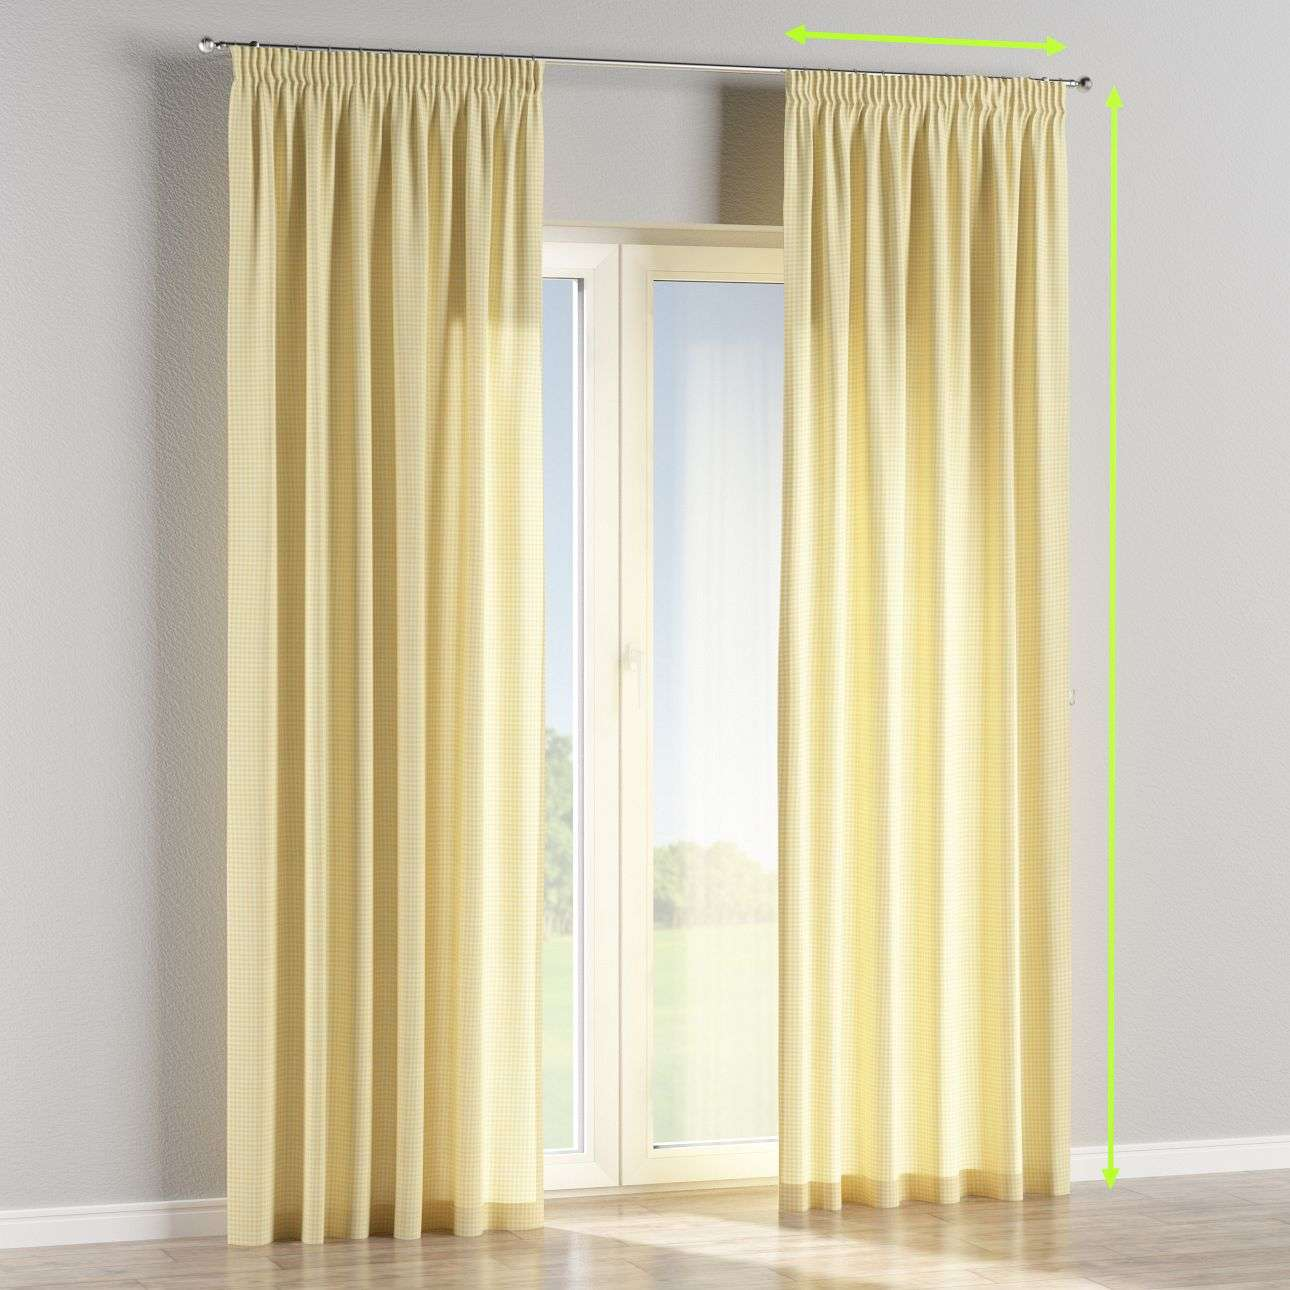 Pencil pleat curtains in collection Ashley, fabric: 137-64